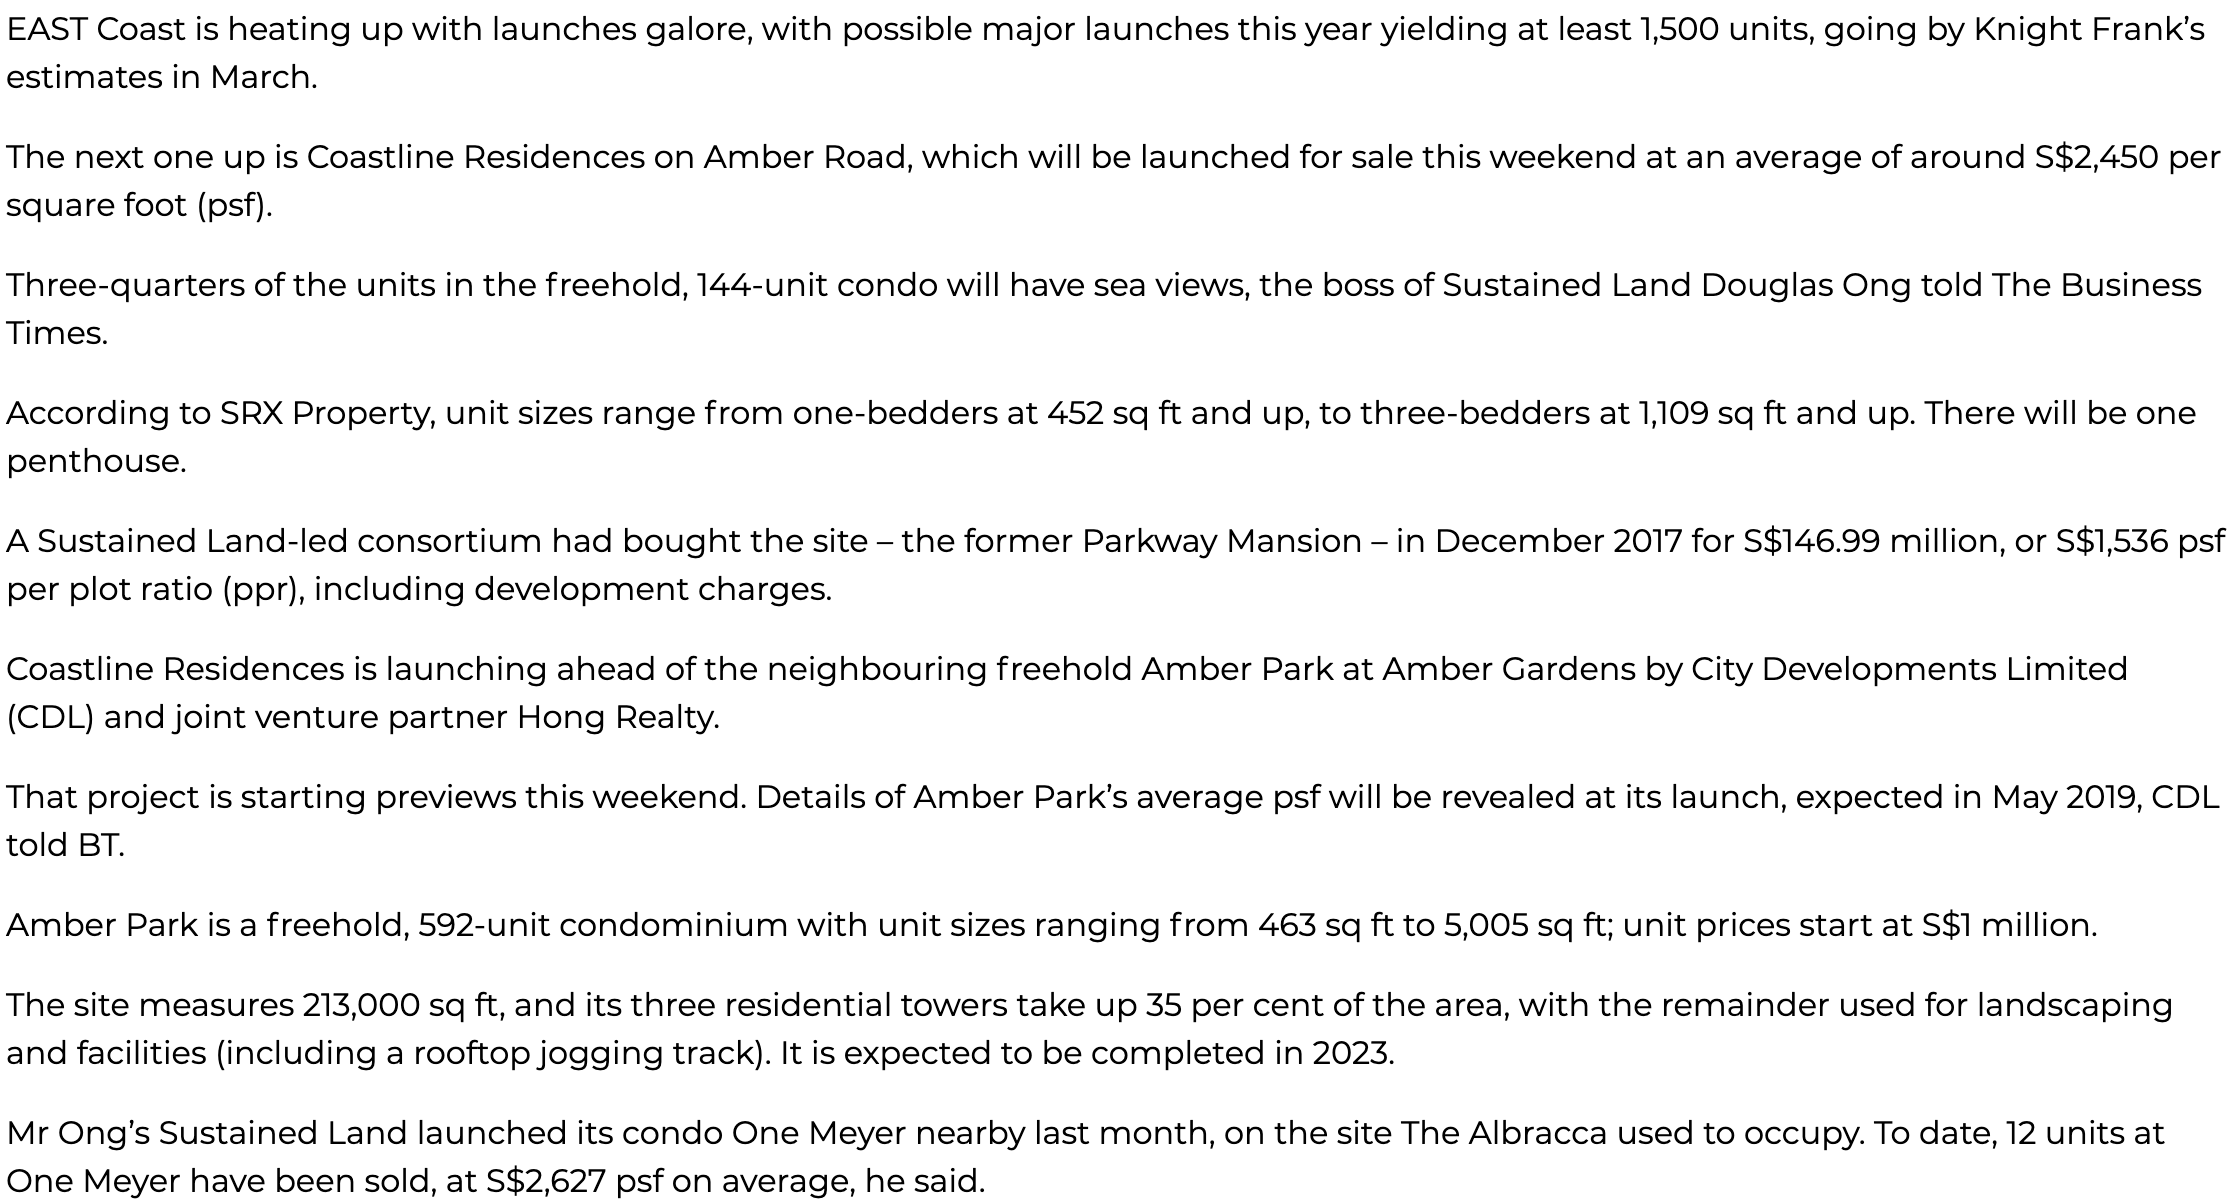 coastline-residences-to-launch-this-weekend-at-s$2450-psf-page-1